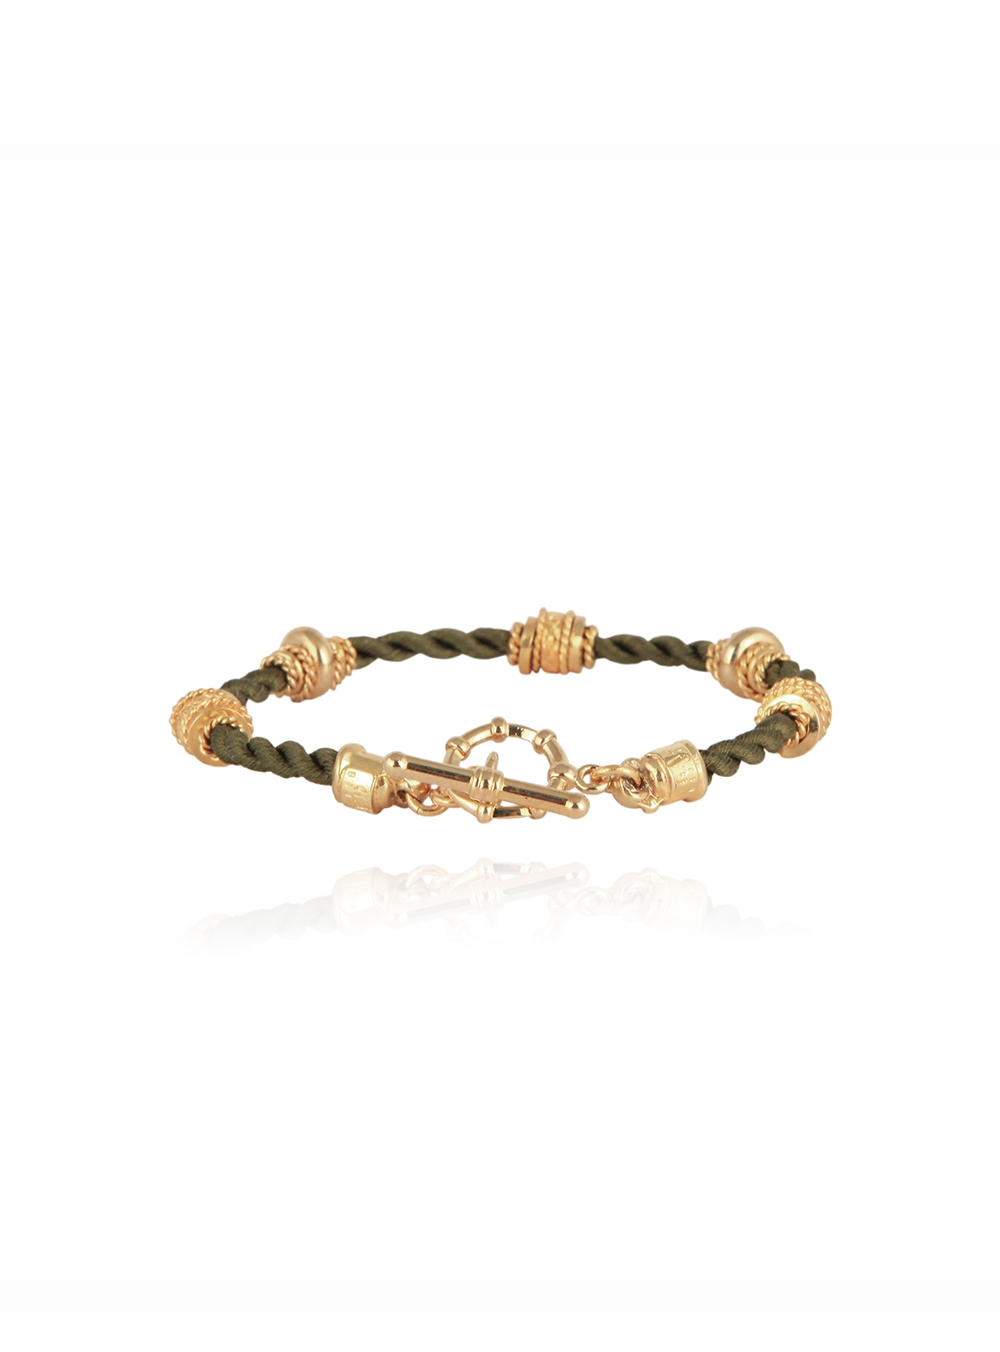 BRACELET MARQUISE PM OR